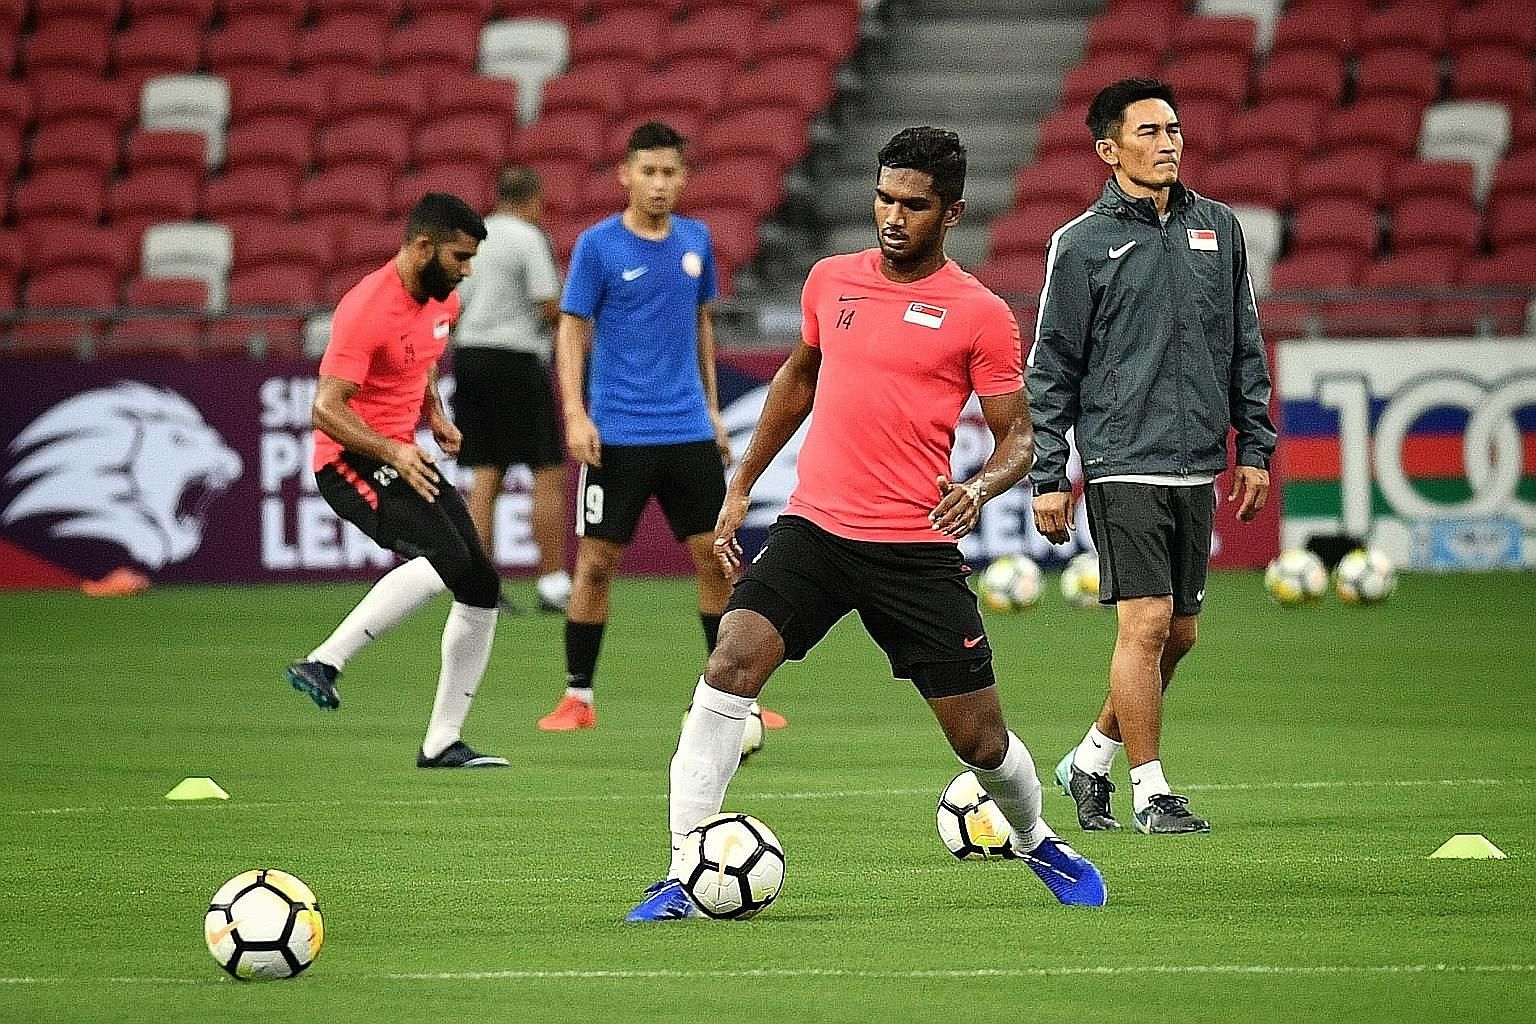 The Lions training at the National Stadium before their friendly against the Solomon Islands tonight. ST PHOTO: CHONG JUN LIANG